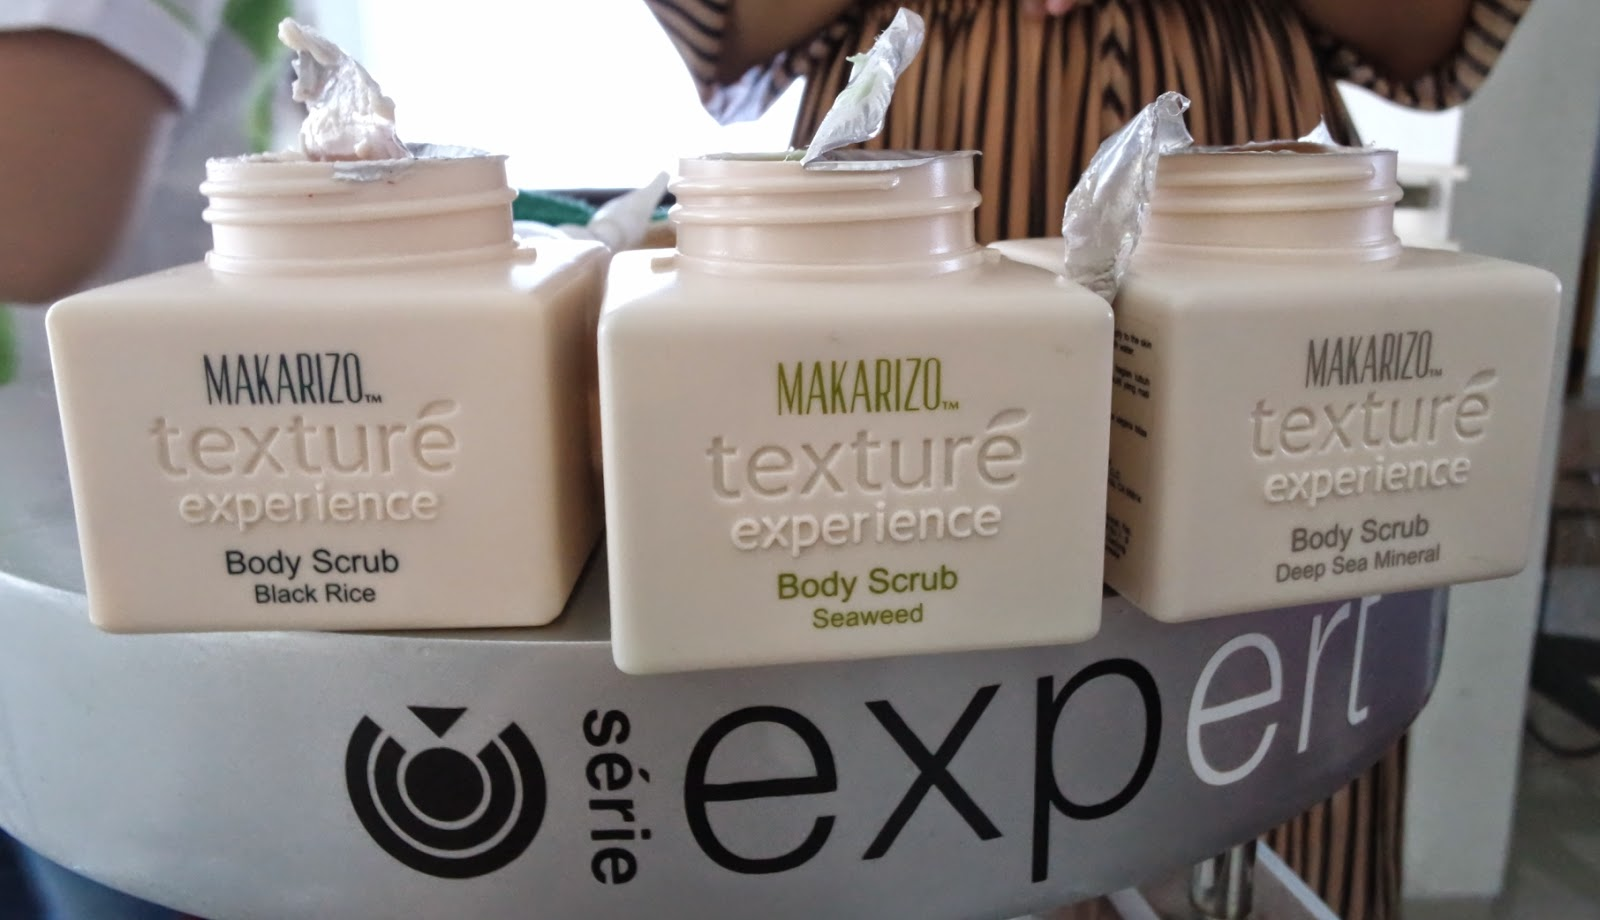 Review Hair Massage Treatment By Texture Experience Makarizo Shampoo 250ml After That Went All The Way To My Lower Spine A Point Where I Was In Bending Position Few Times Oline Actually Thought Picking Up